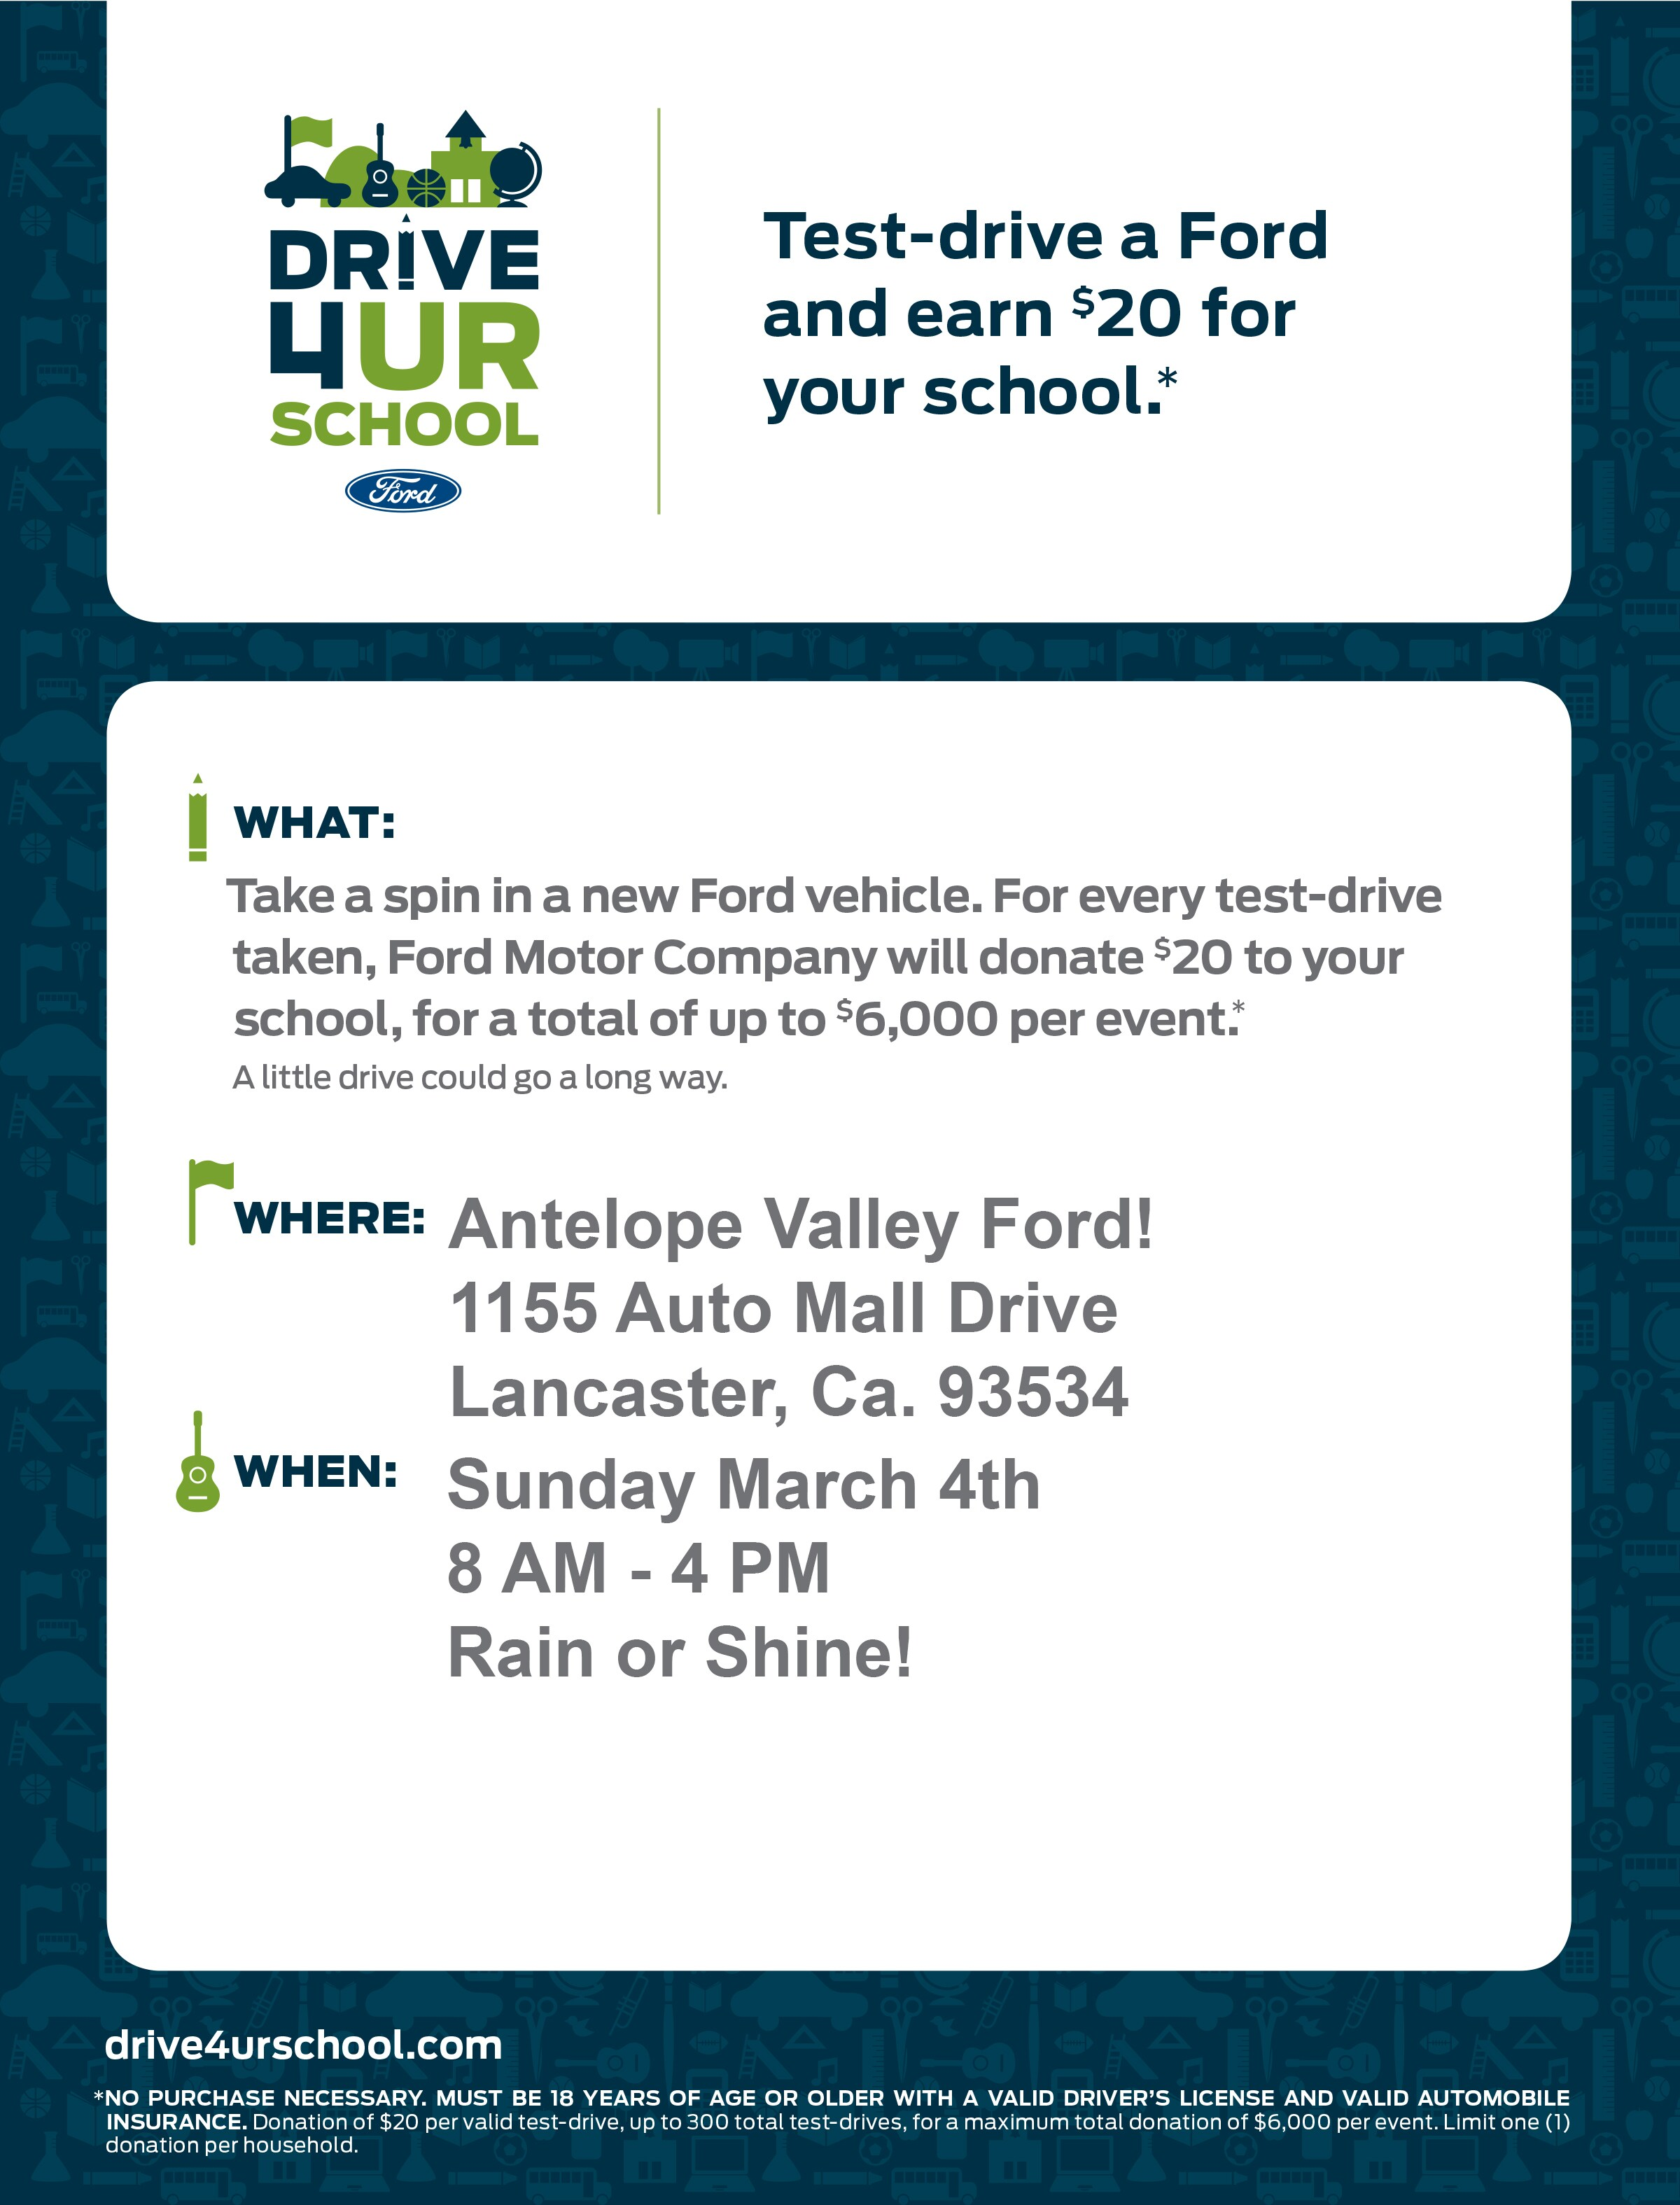 Eastside EHS Lions Test-drive a Ford and earn $20 for your school at AV Ford in Lancaster.